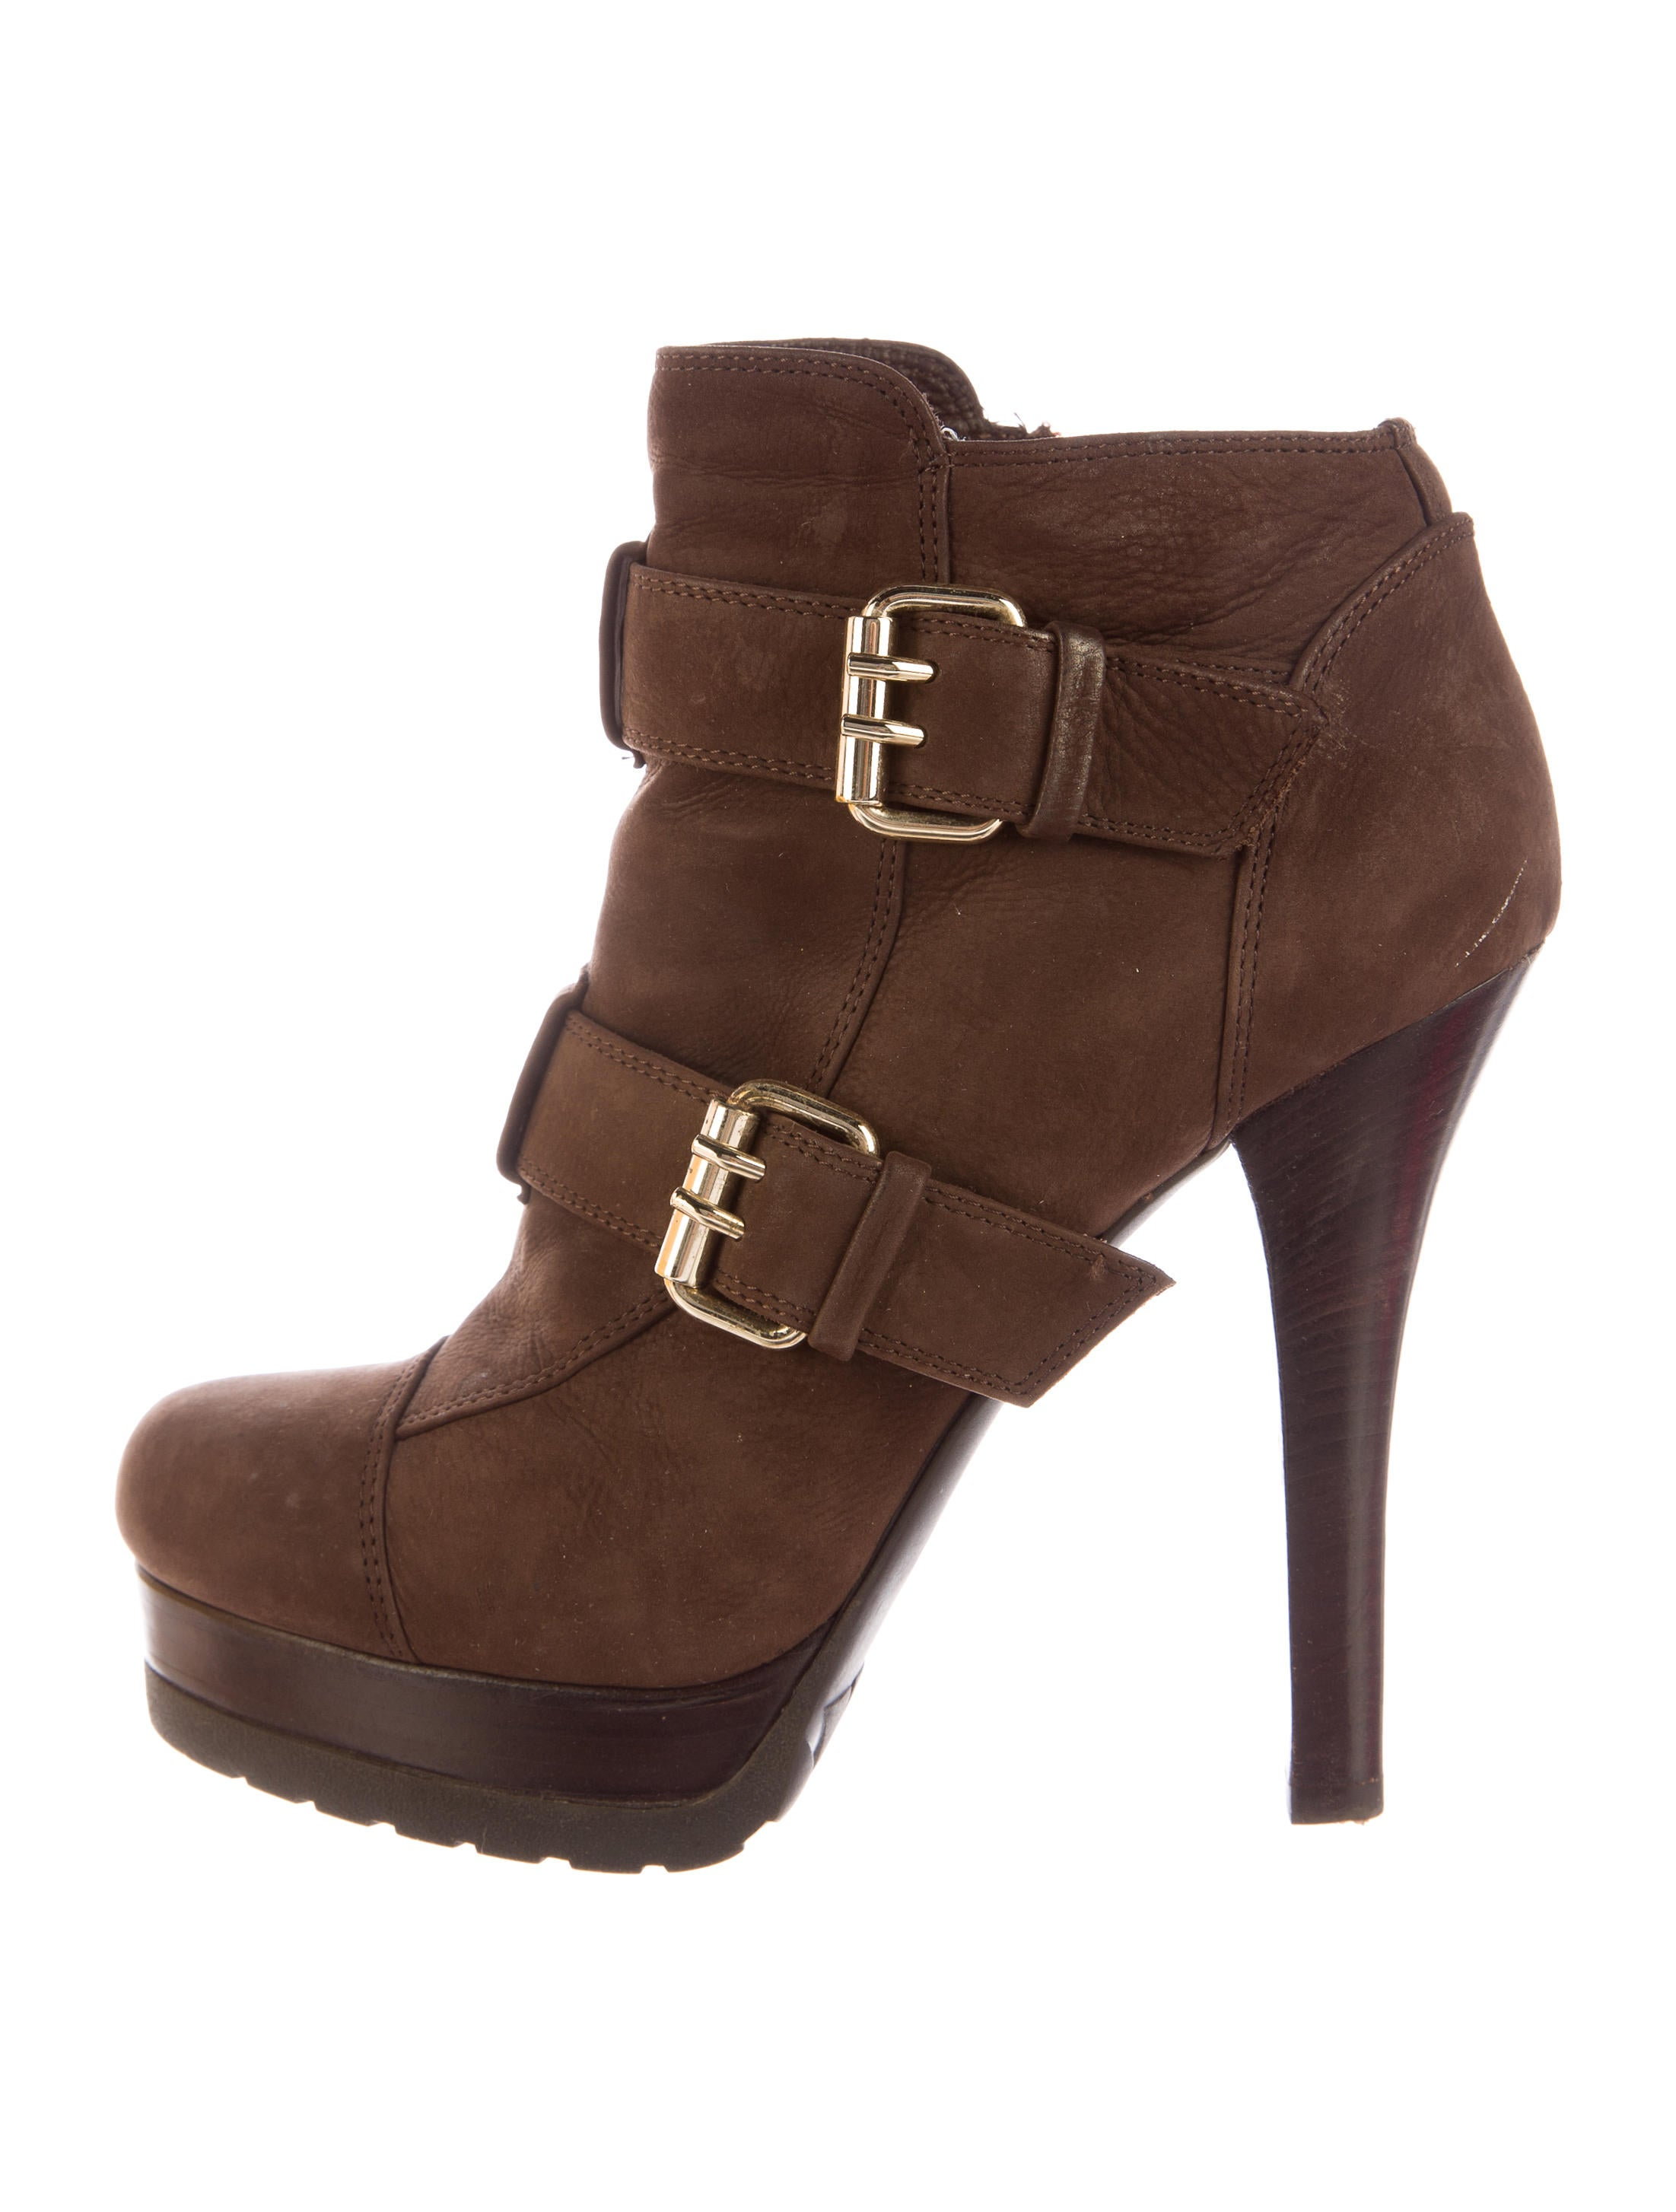 fendi suede buckle booties shoes fen43153 the realreal